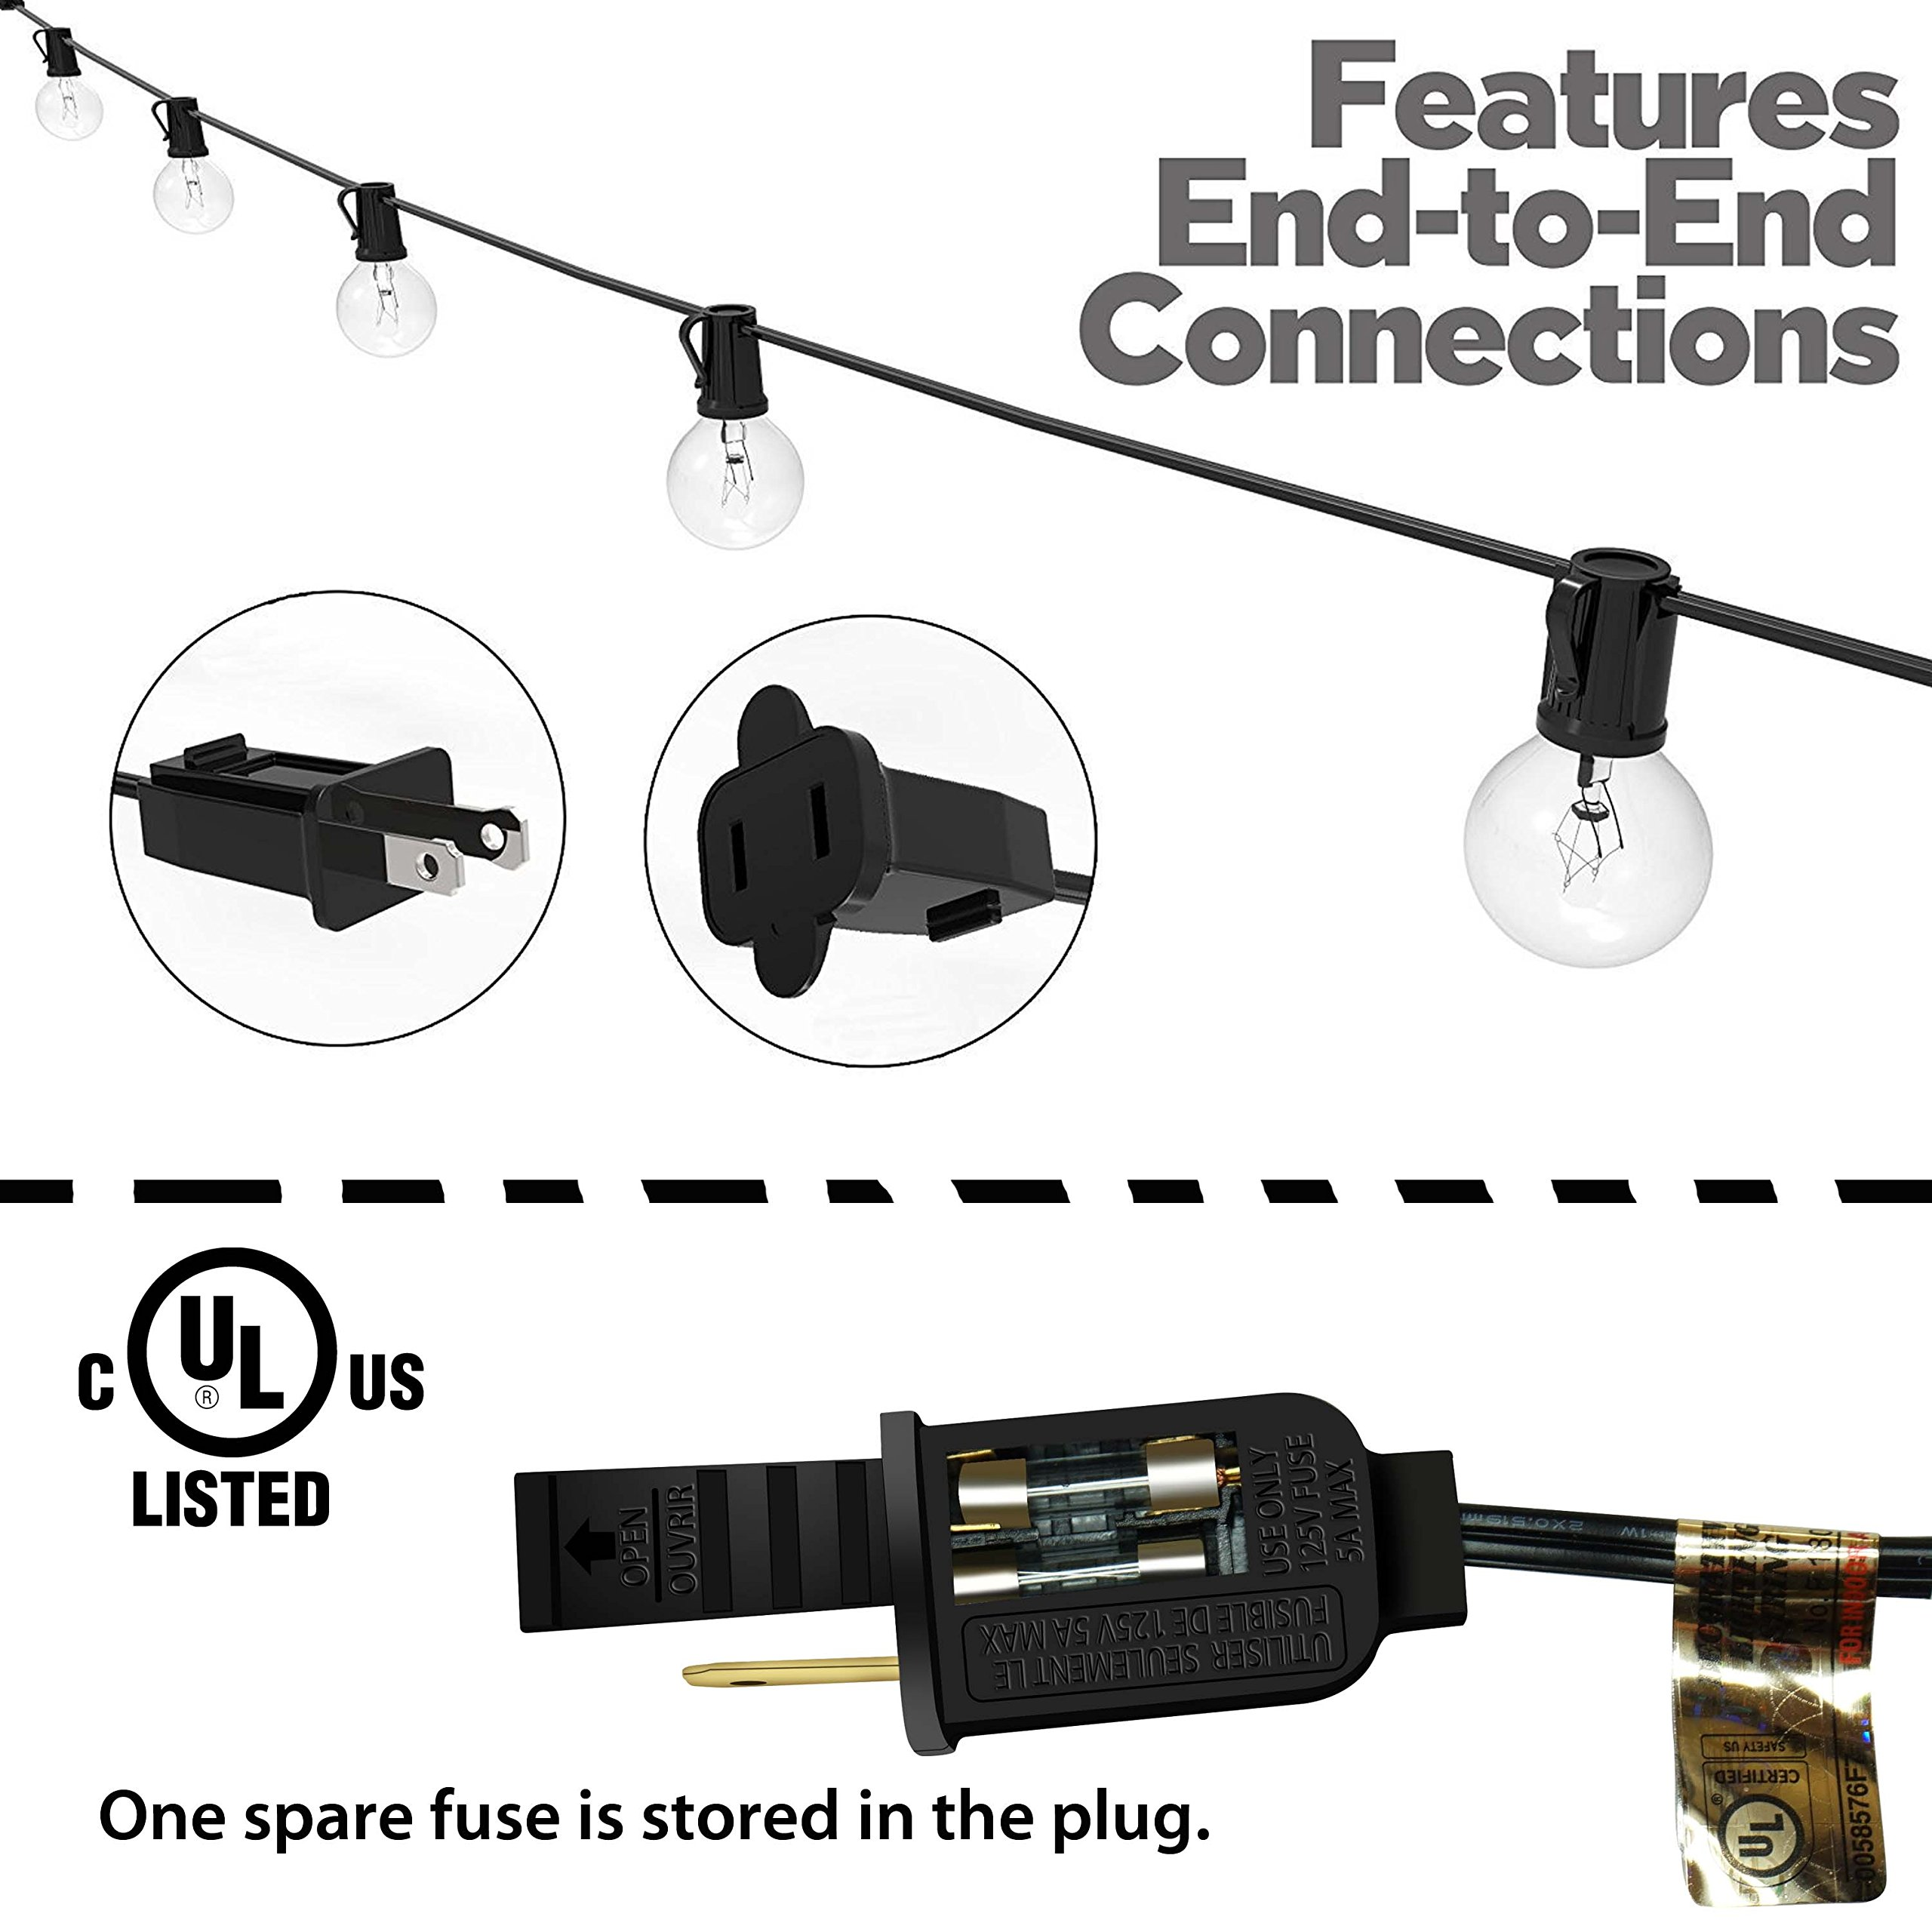 String Lights, Lampat 25Ft G40 Globe String Lights with Bulbs-UL Listd for Indoor/Outdoor Commercial Decor by LAMPAT (Image #2)